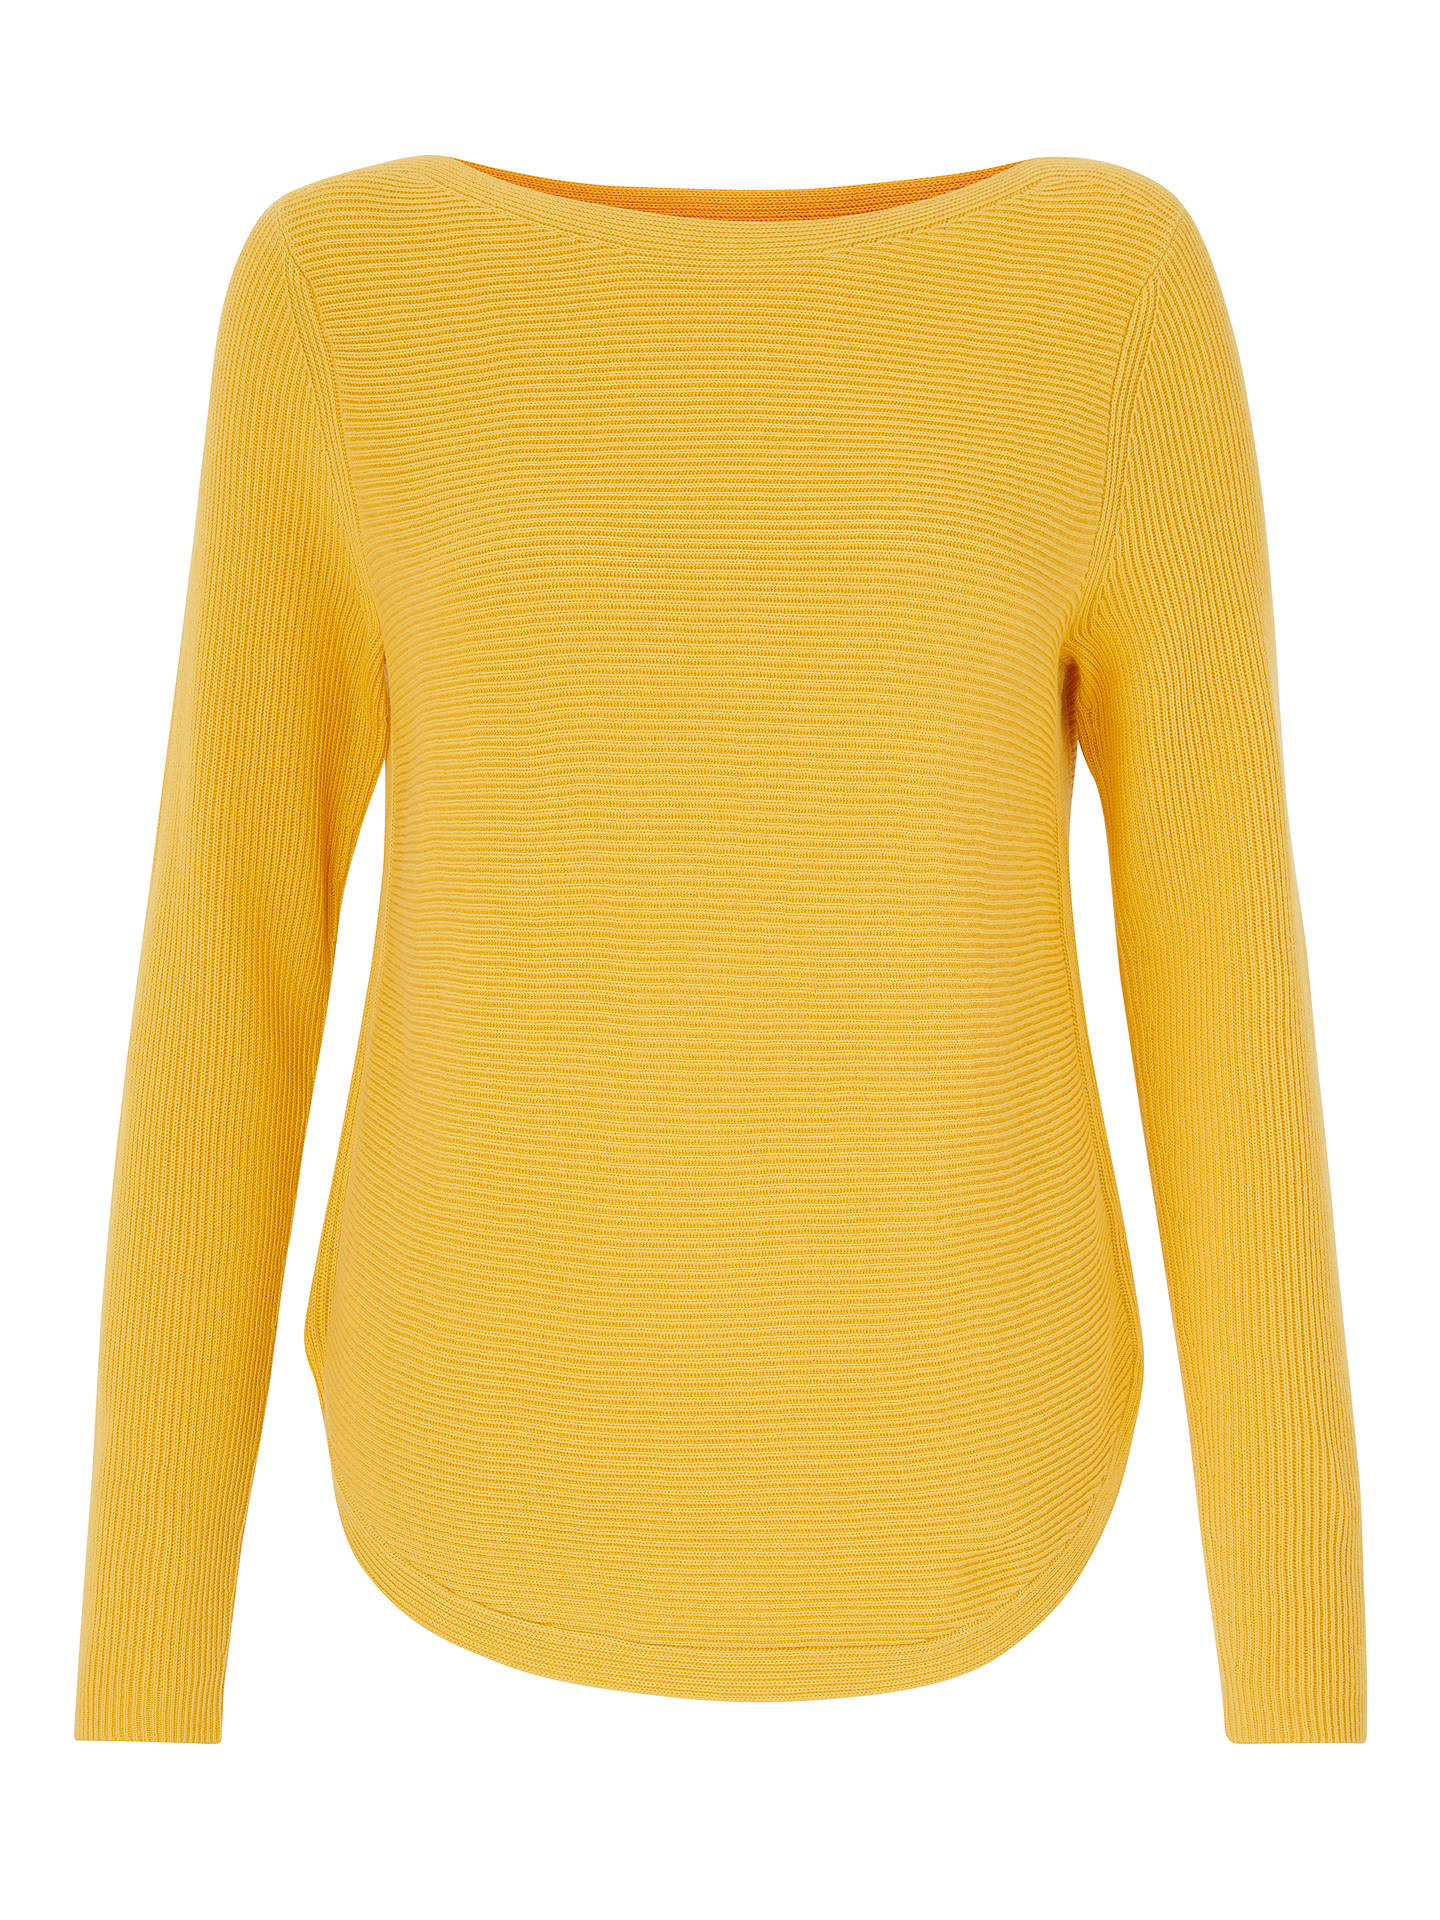 BuyJohn Lewis & Partners Rib Stitch Boat Neck Jumper, Mimosa Yellow, 8 Online at johnlewis.com